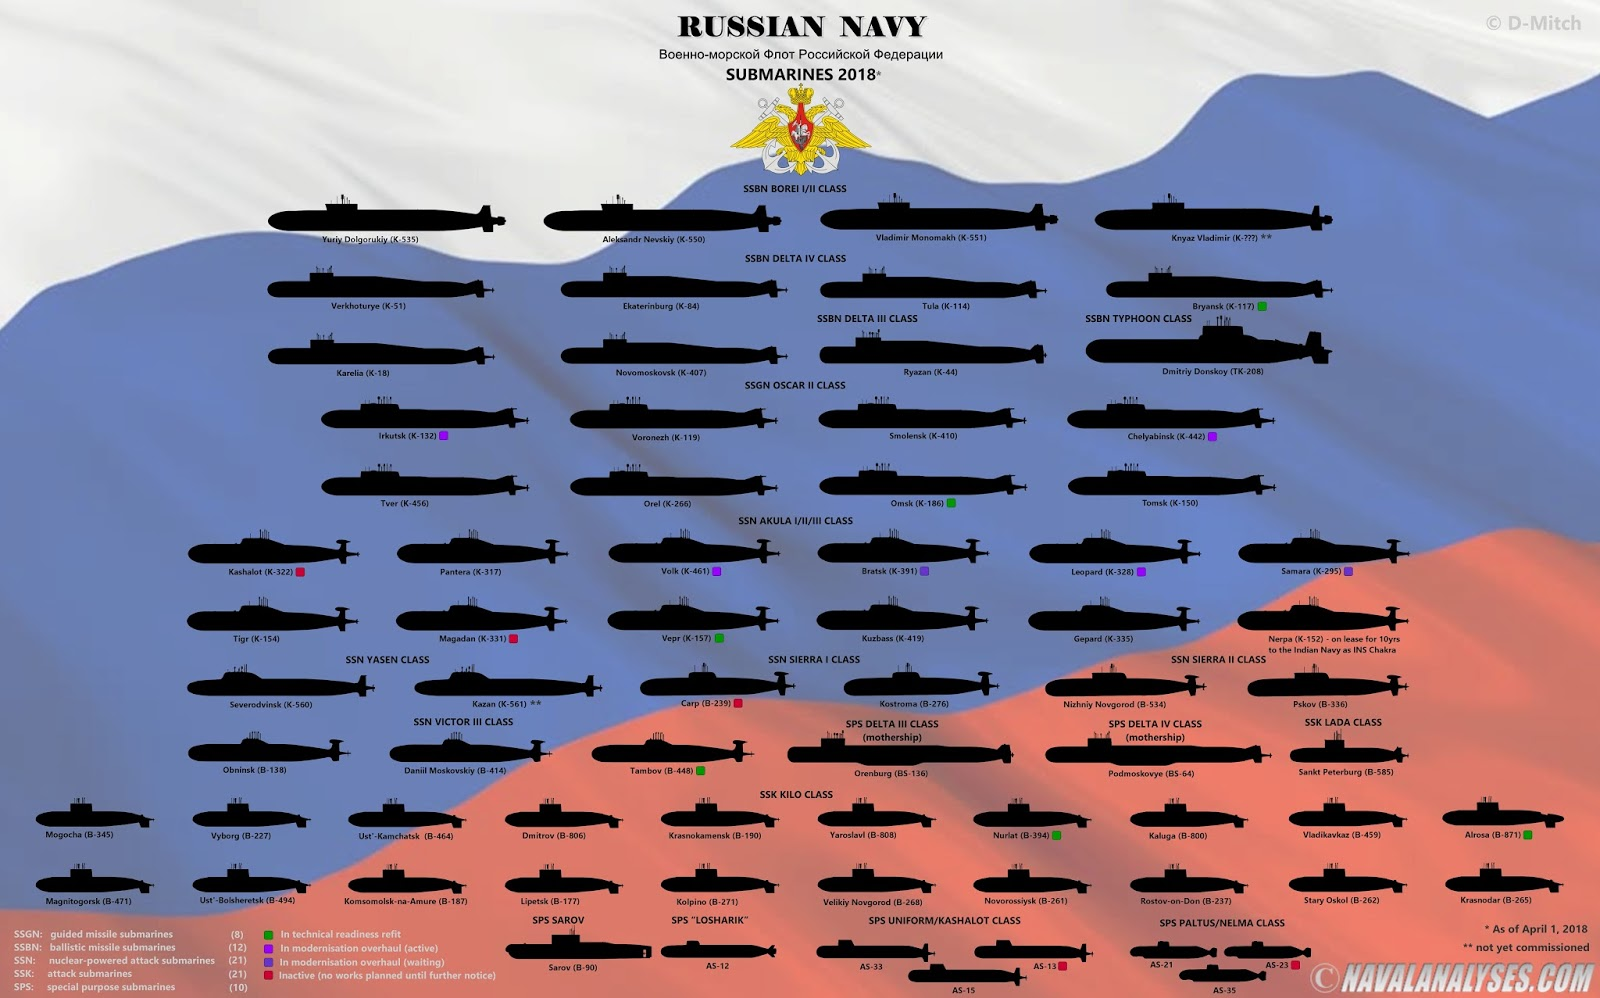 The Russian Navy submarines in 2018.